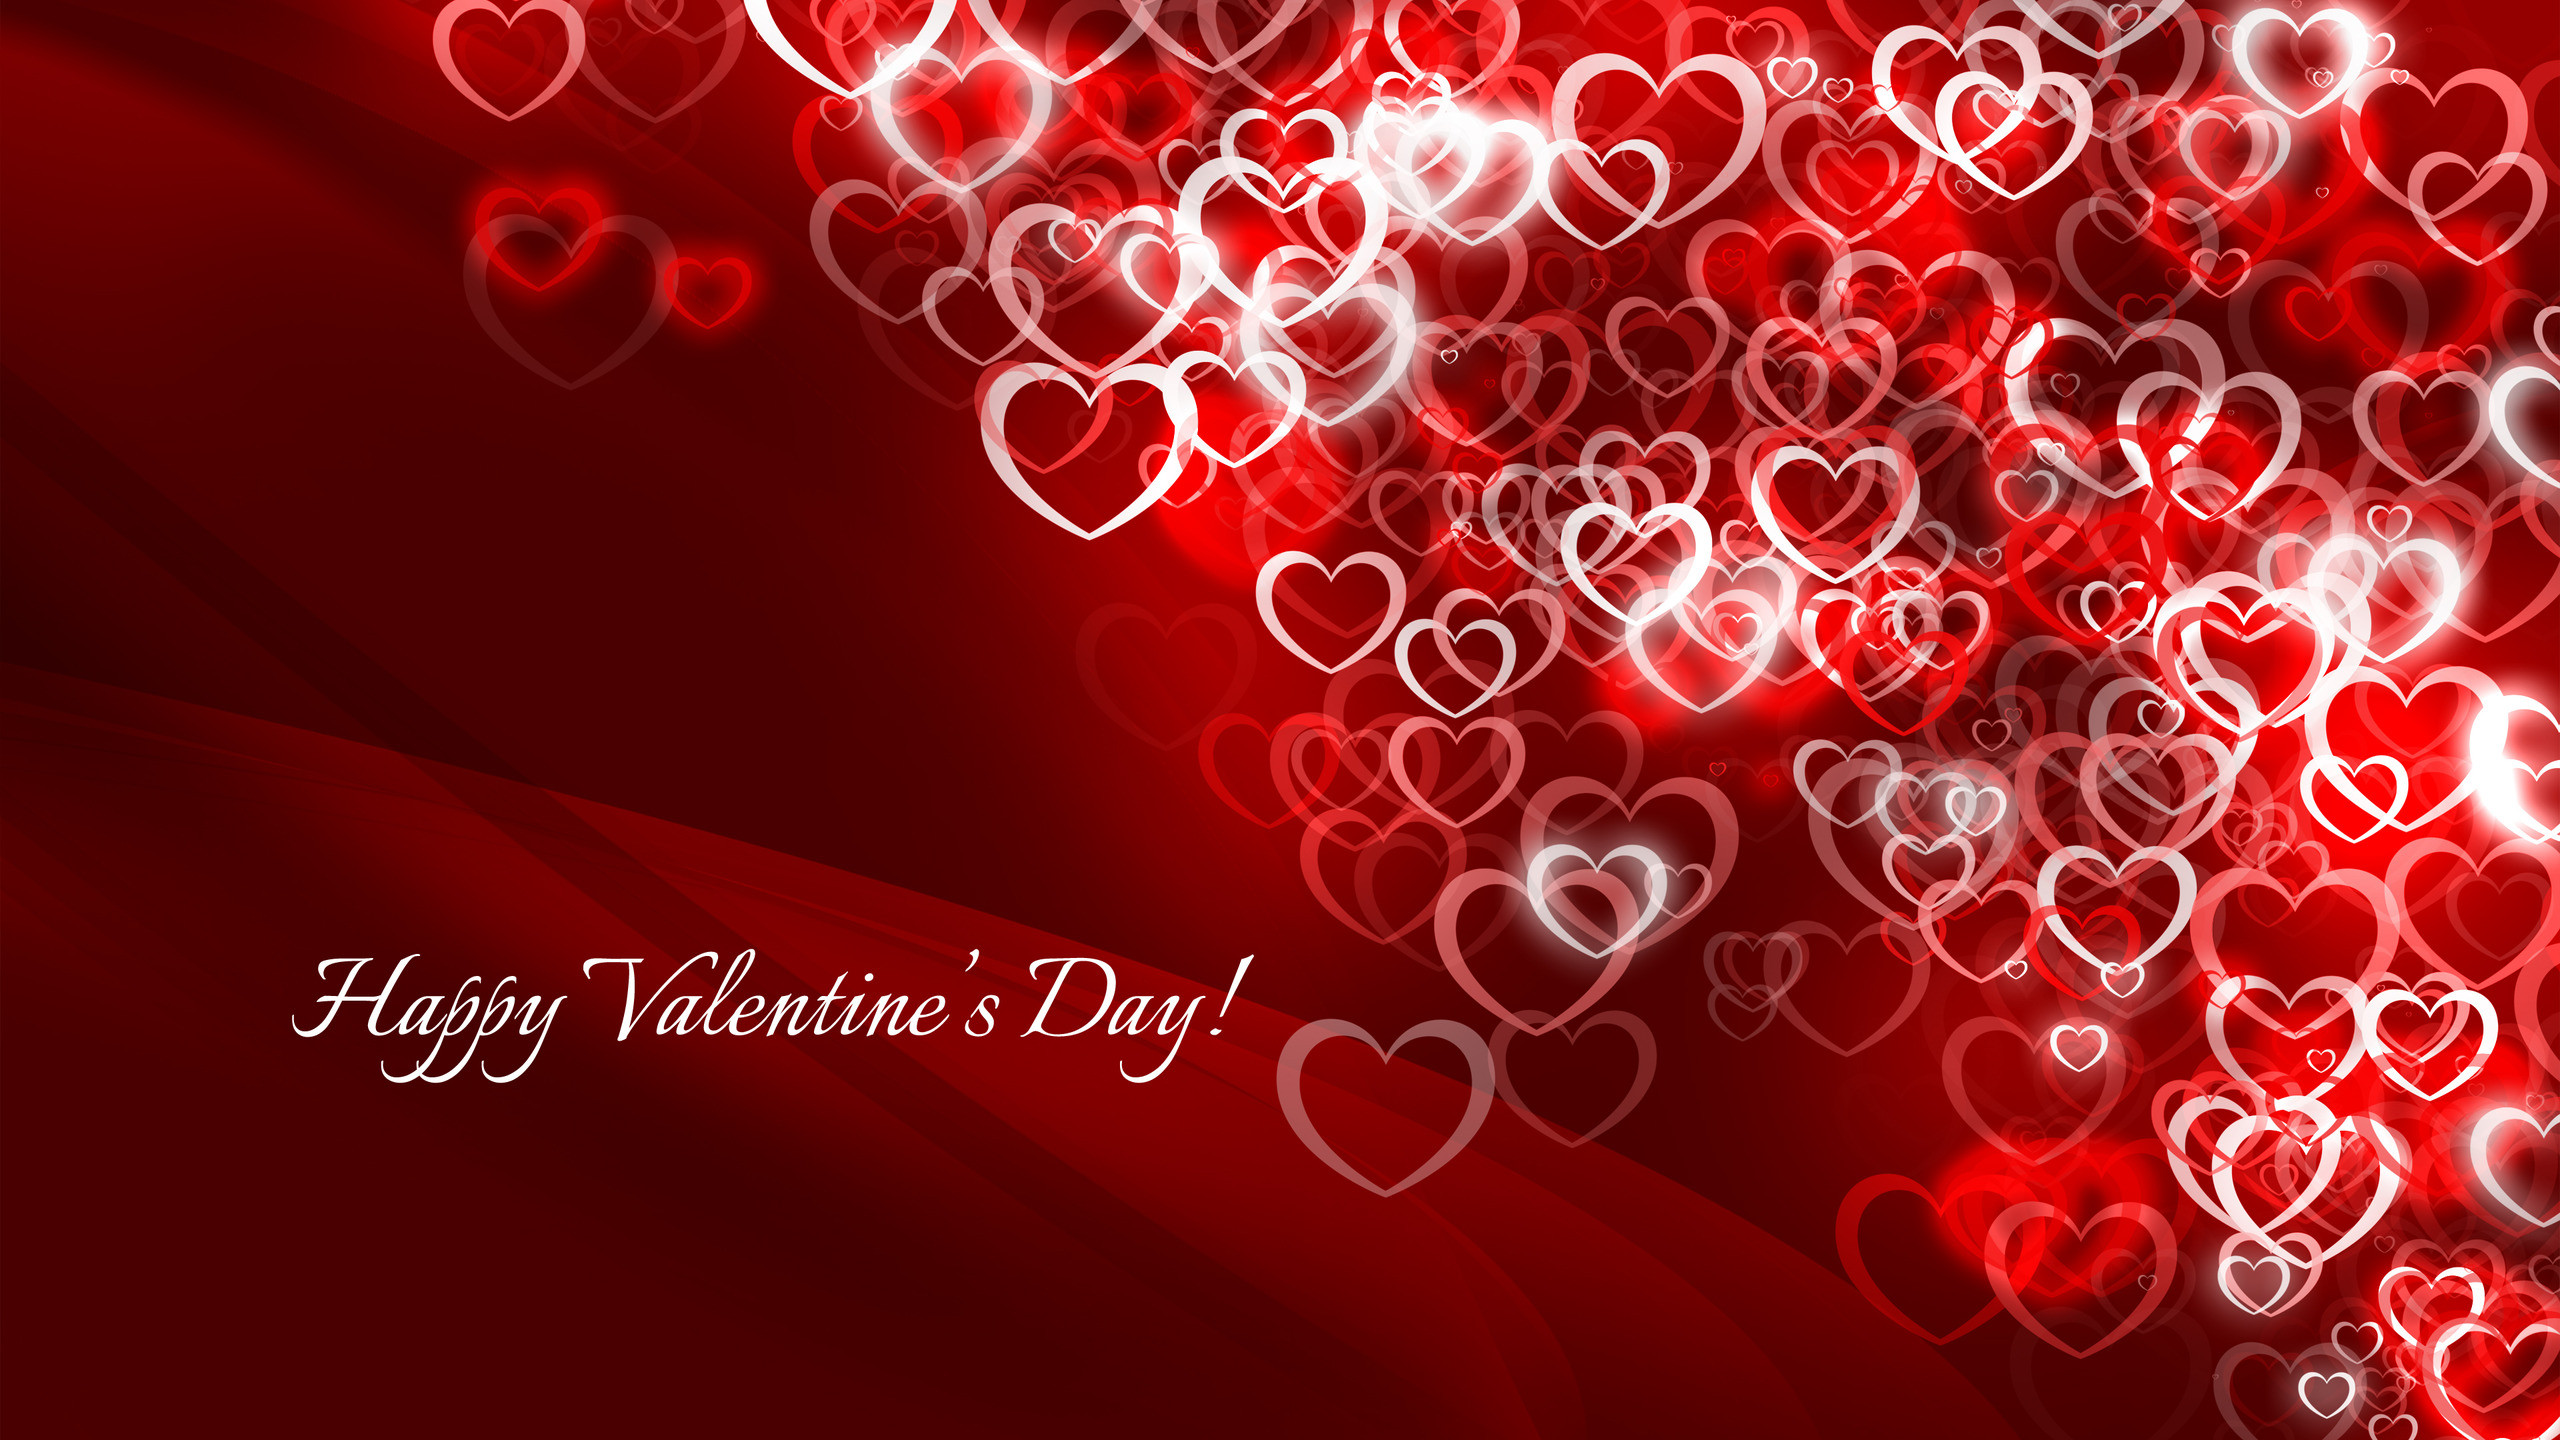 2560x1440 Valentines Day 4K Wallpapers Valentines Day Wallpaper Images